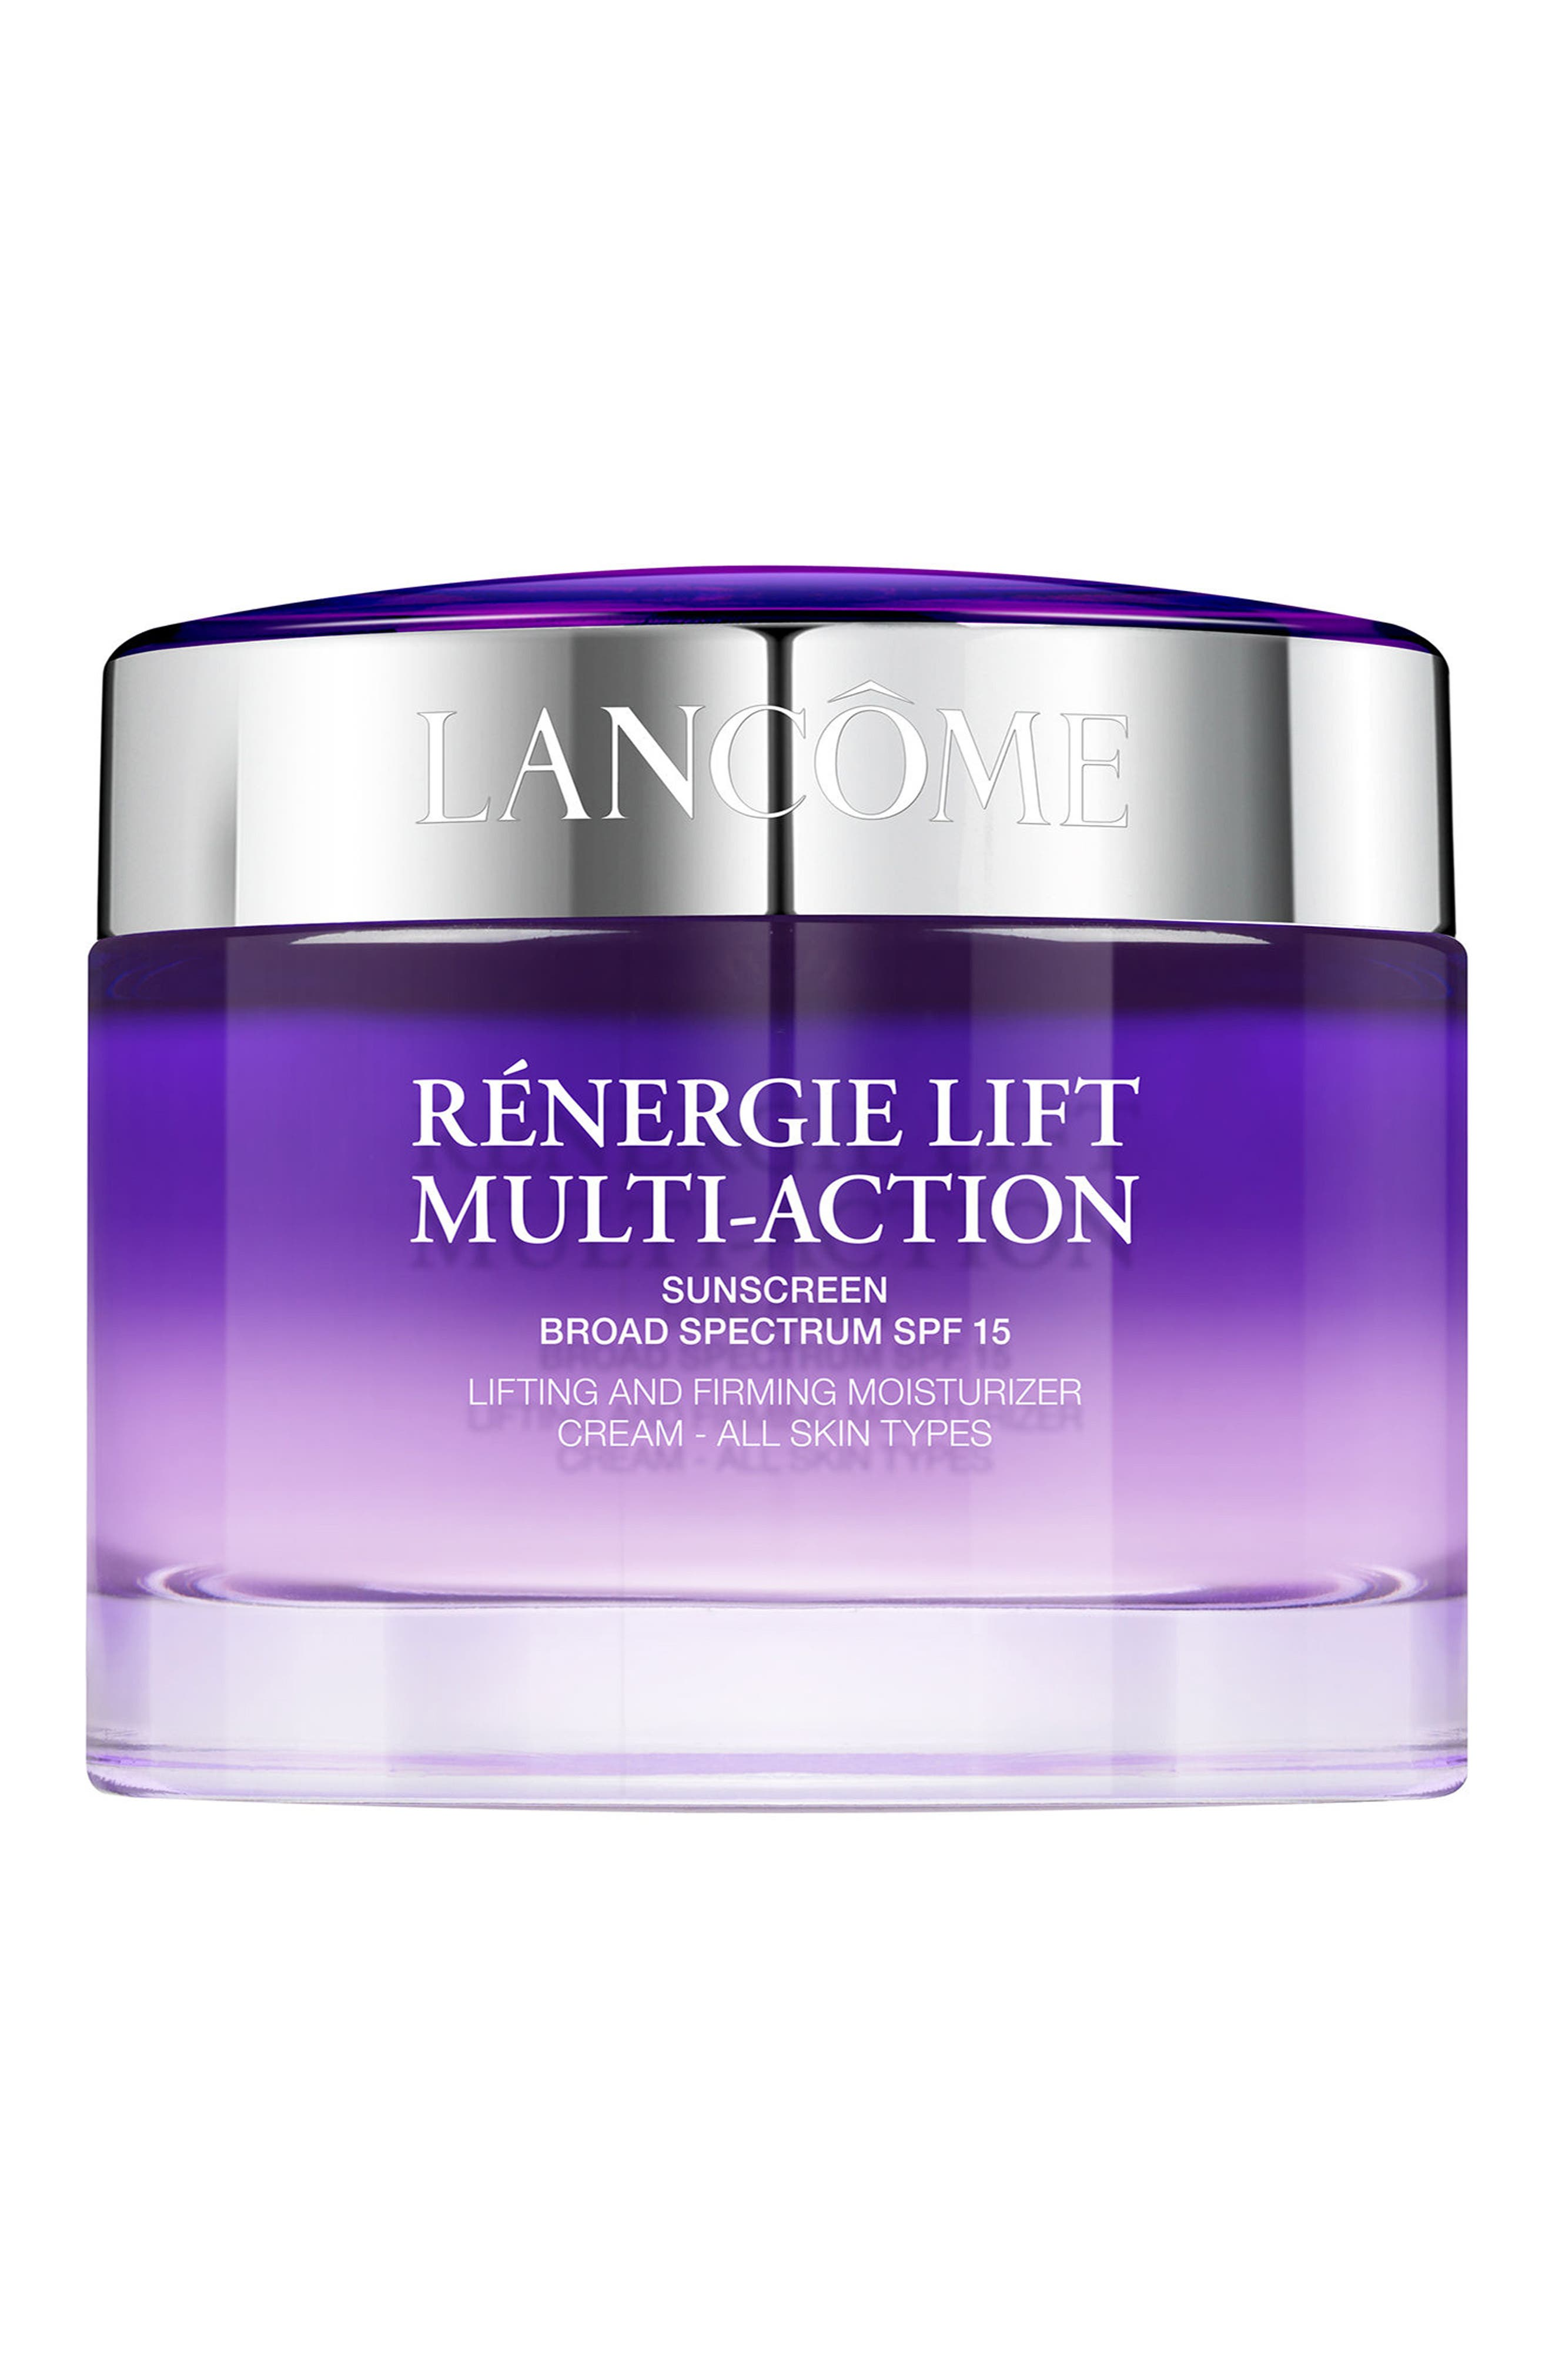 Rénergie Lift Multi Action Moisturizer Cream SPF 15 for All Skin Types,                             Main thumbnail 1, color,                             No Color